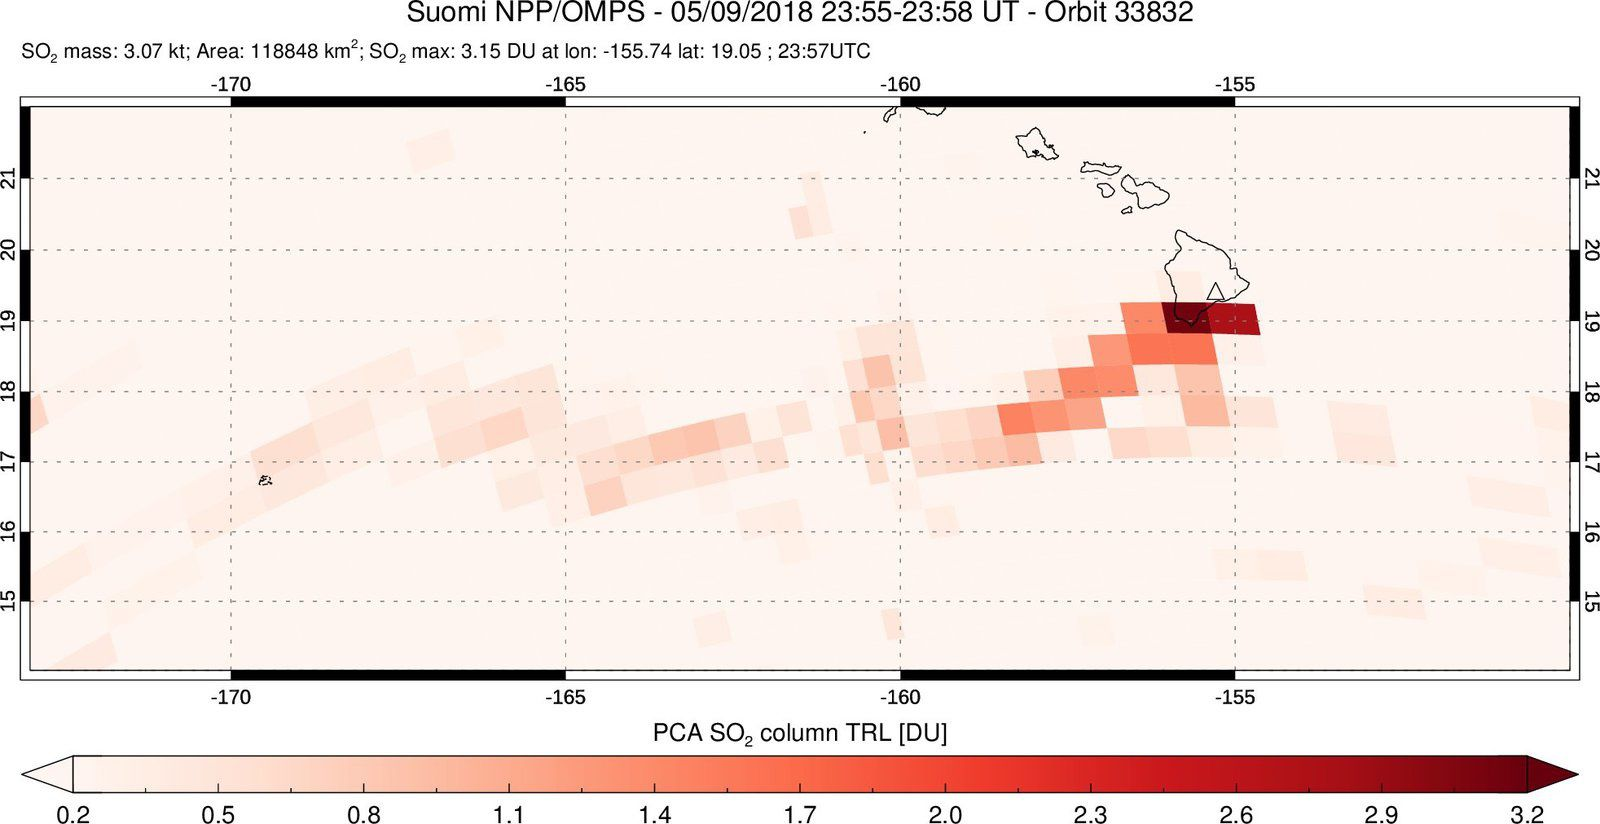 Sulfur dioxide plume issued by Kilauea up to 1,500 km from Hawaii - doc 09.05.2018 / NASA / NPP / OMPS via Simon Carn